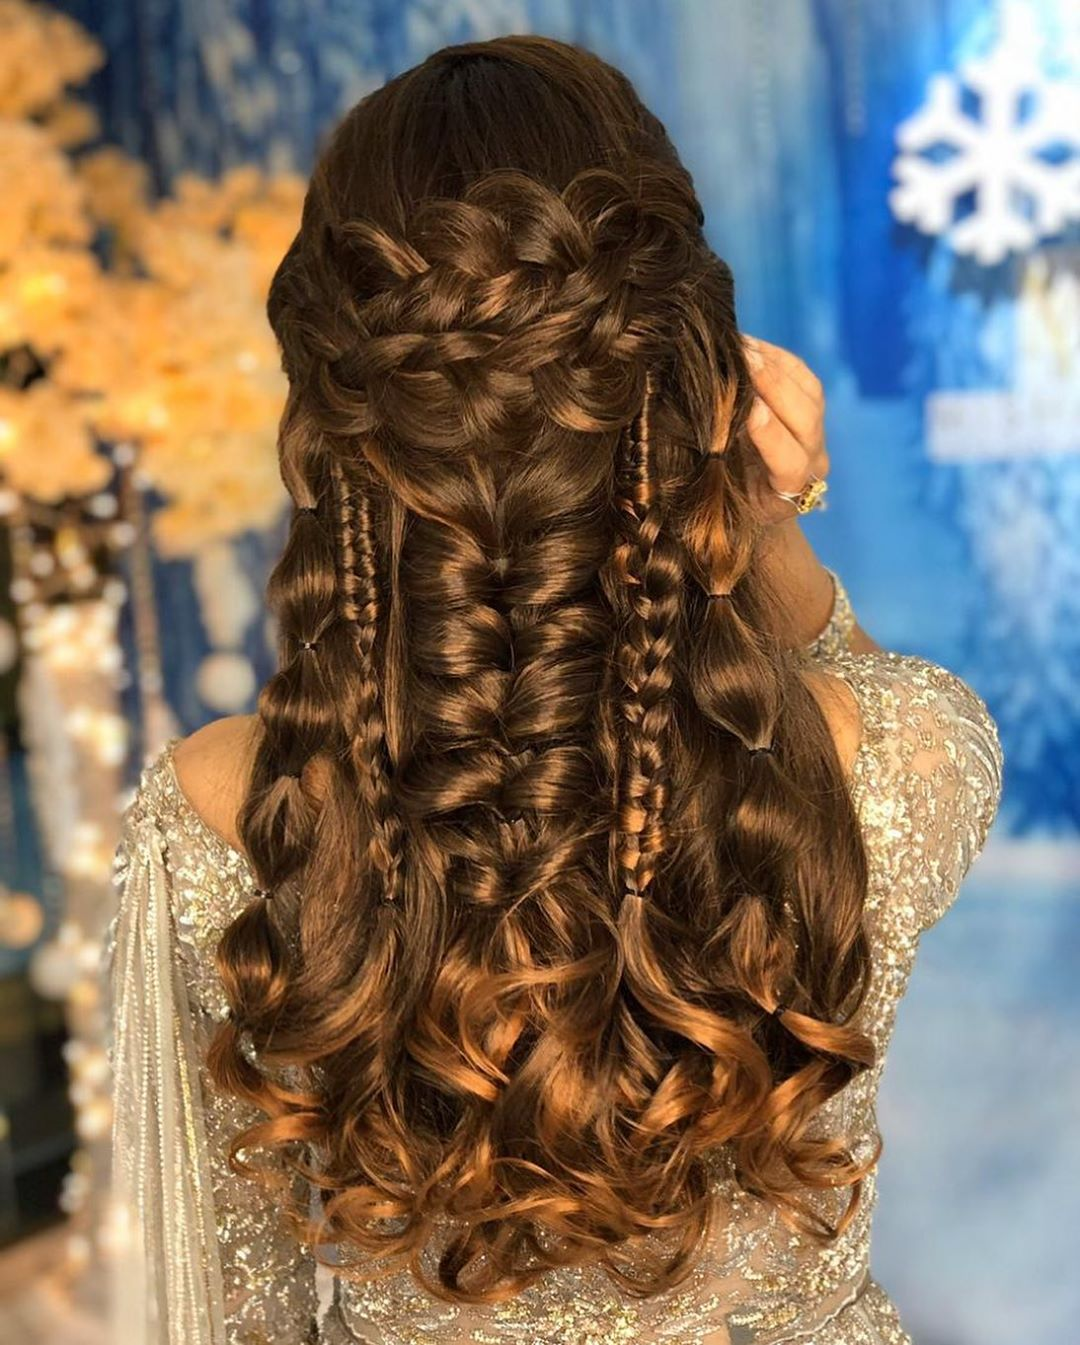 The Right Hairstyle For Your Wedding: Best Hairstyle For A Wedding, Mehndi And Haldi With Floral